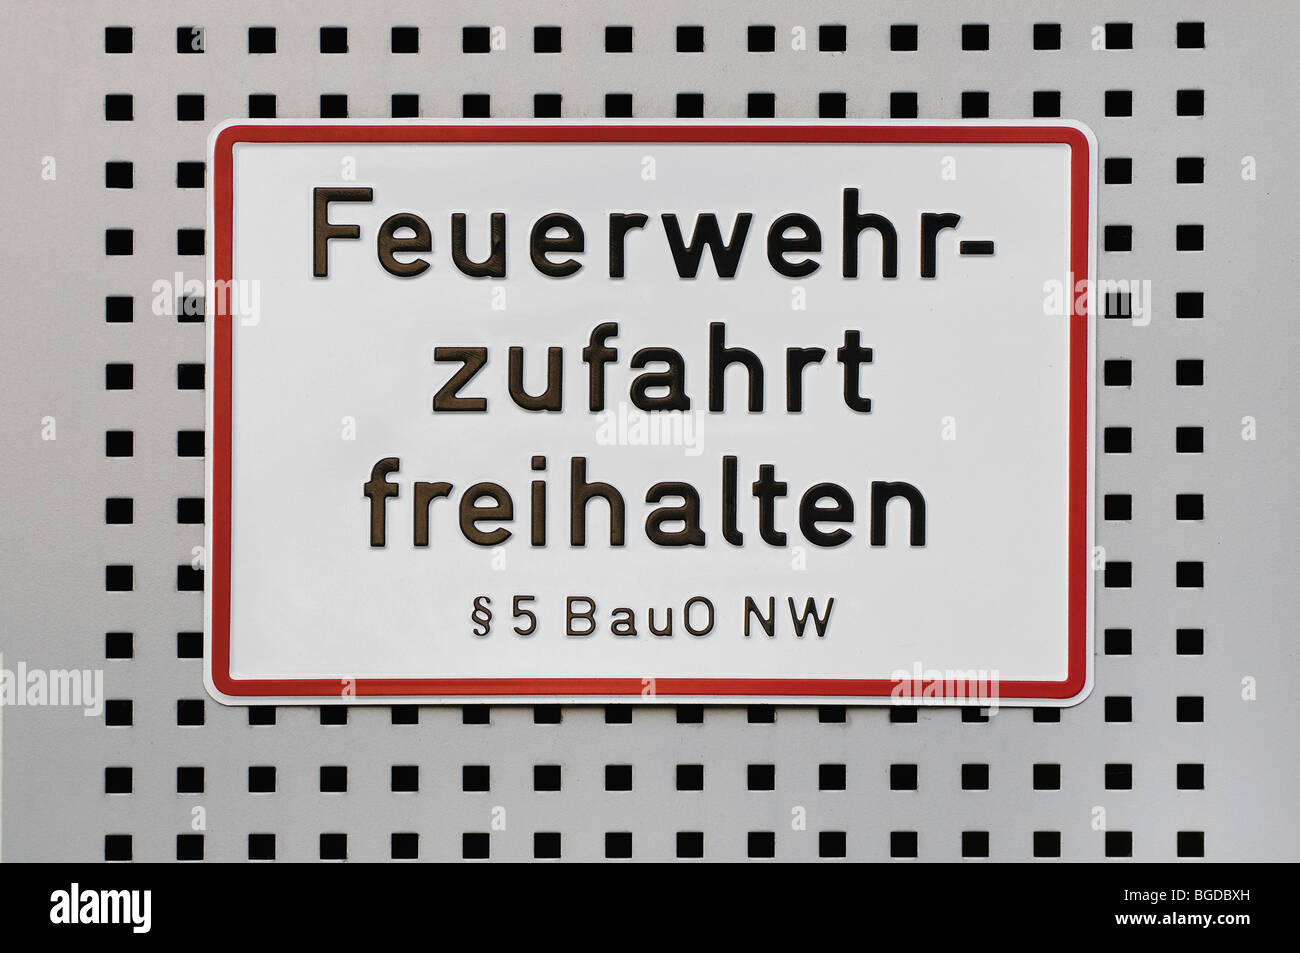 Sign, Feuerwehrzufahrt freihalten, ss 5 BauO NW, German for Keep fire service access clear, according to paragraph - Stock Image